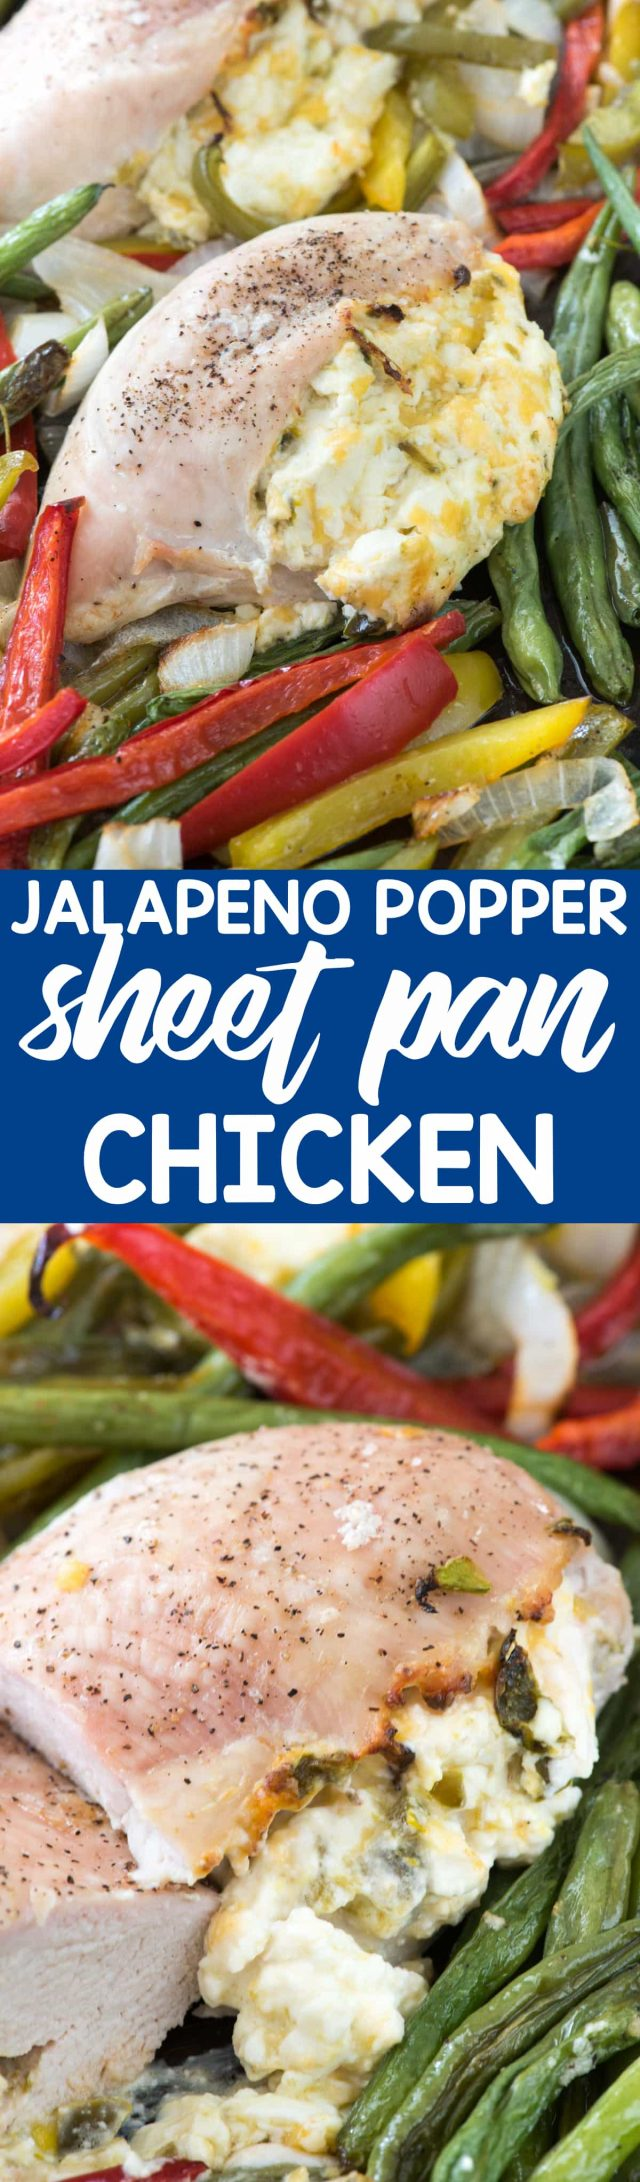 Jalapeño Popper Sheet Pan Chicken - this EASY chicken dinner is a sheet pan meal that's done fast! It's the perfect easy weeknight meal; chicken breasts stuffed with a creamy jalapeño mixture!